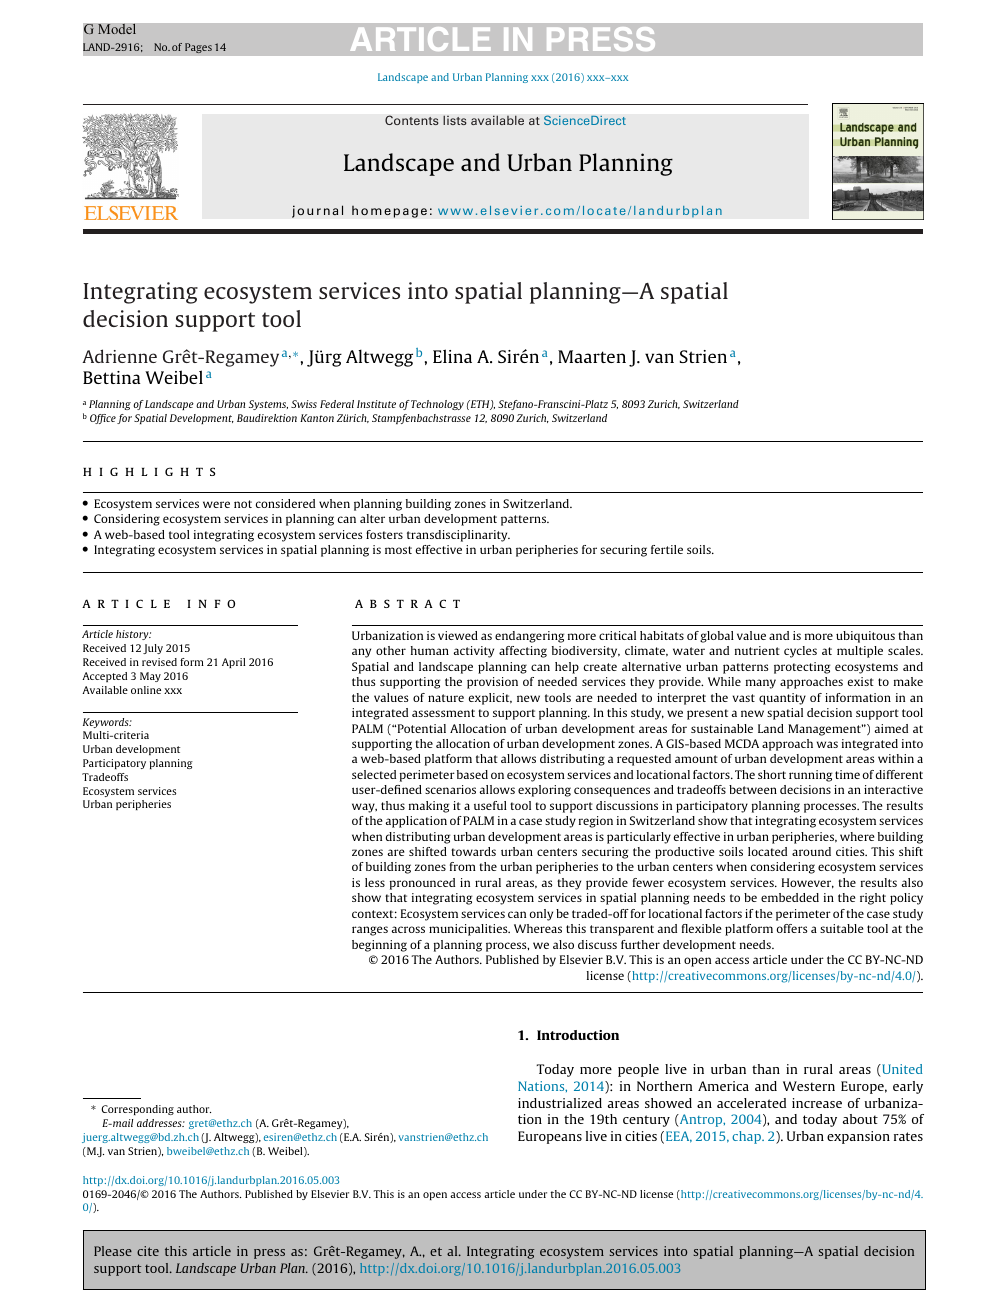 Integrating ecosystem services into spatial planning—A